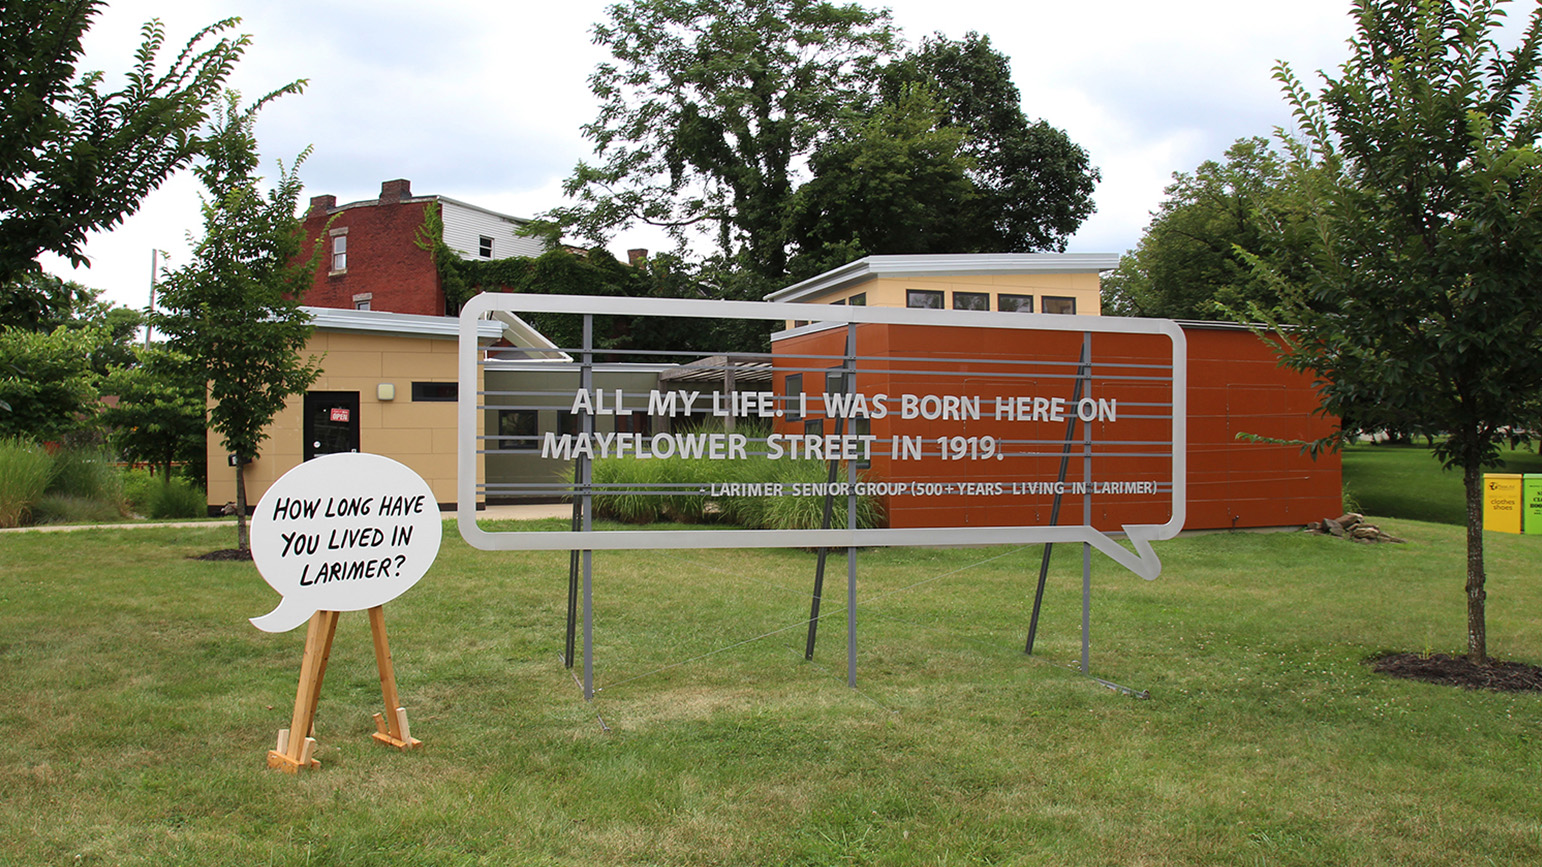 """Two large speech bubbles installed outside, one reading """"How long have you lived in Larimer"""" and the other reading """"All my life. I was born here on Mayflower Street in 1919."""""""